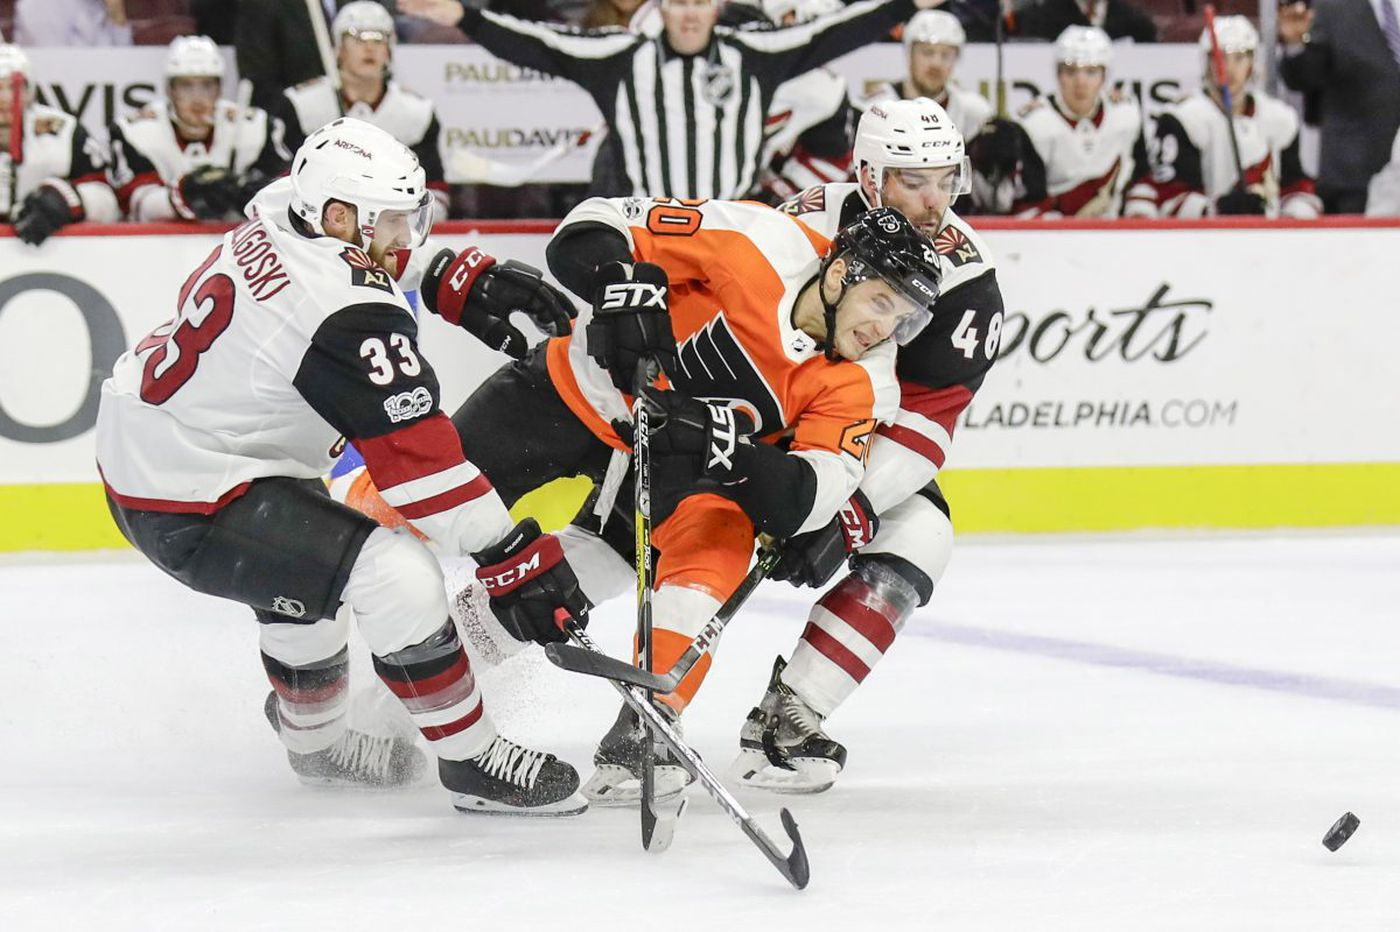 Taylor Leier replacing Tyrell Goulbourne in Flyers' lineup against Rangers